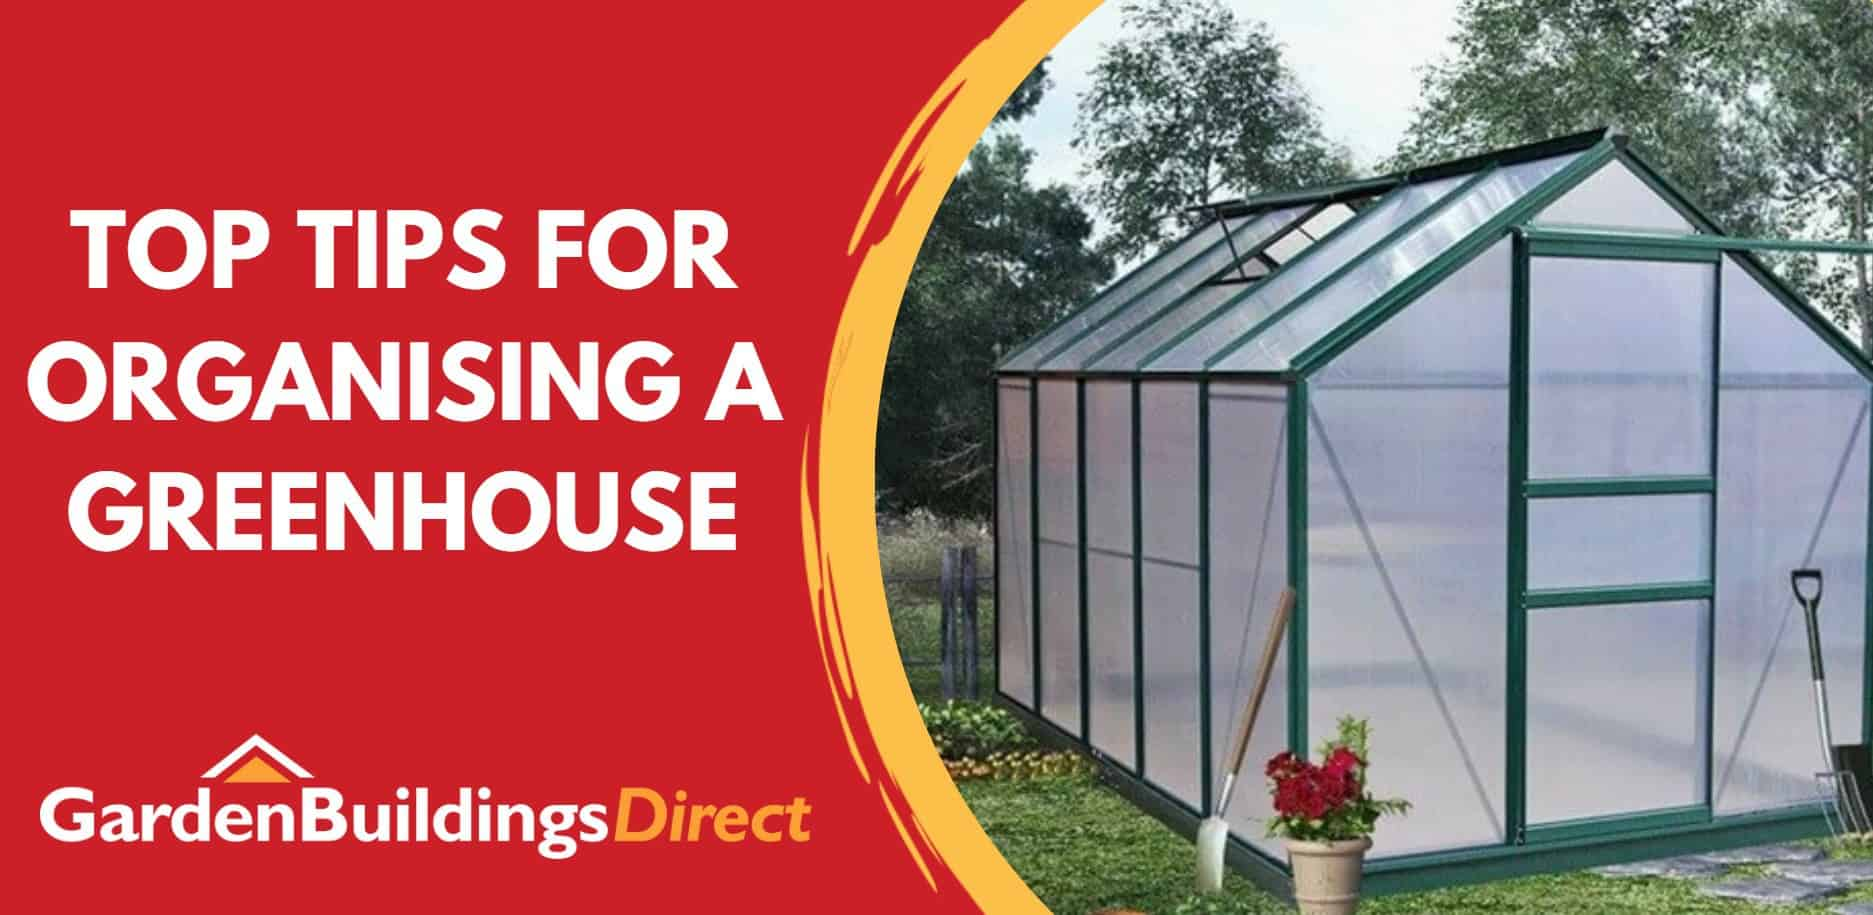 """Greenhouse next to text """"Top tips for organising a greenhouse"""""""